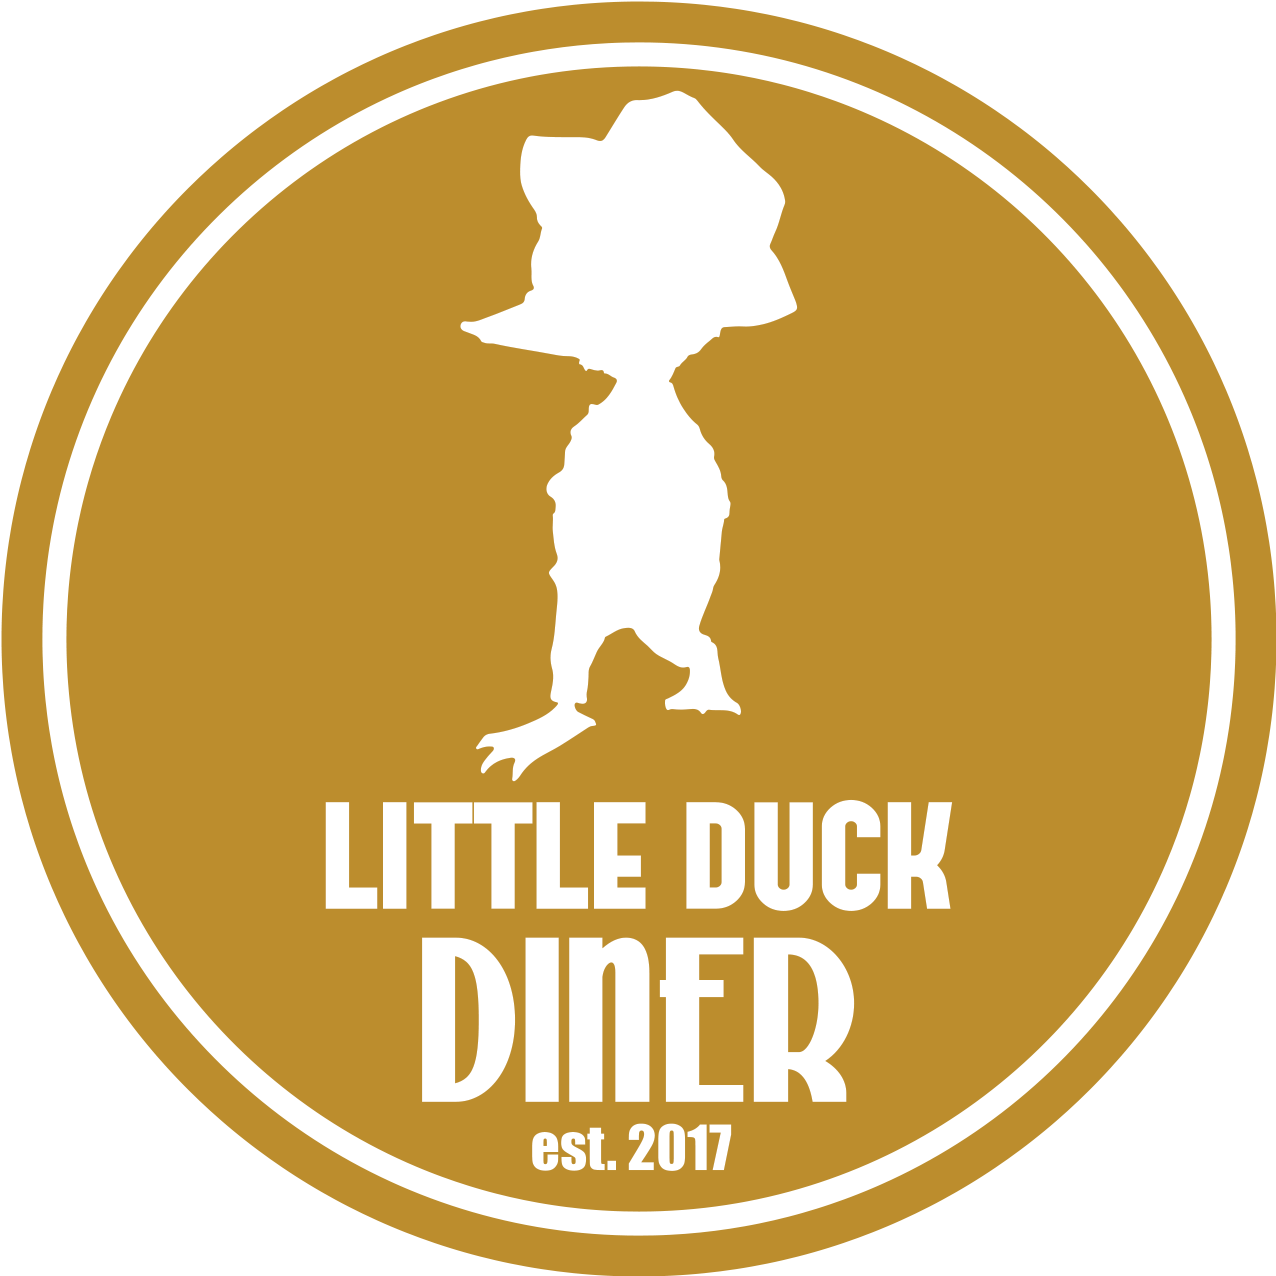 Little Duck Diner